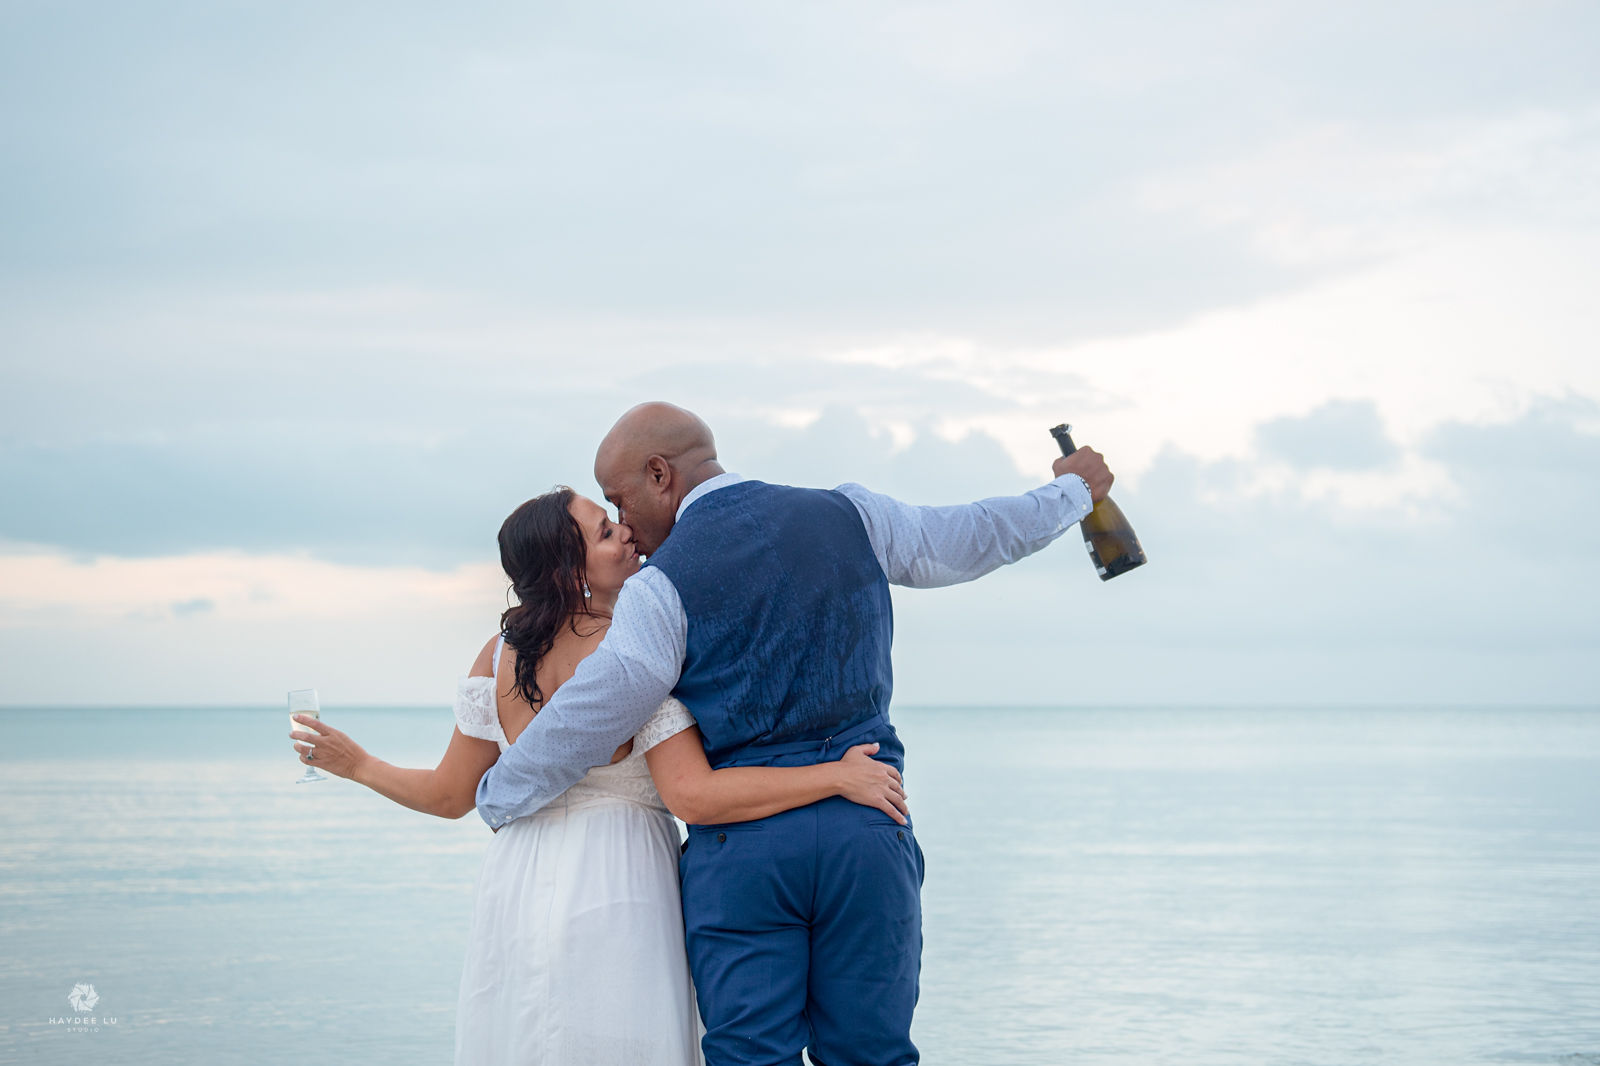 Jill & Dwight's Romantic Elopement Off the Coast of Ambergris Caye, Photography by Haydee Lu Studio for Luxury Destination Wedding network Adriana Wedings